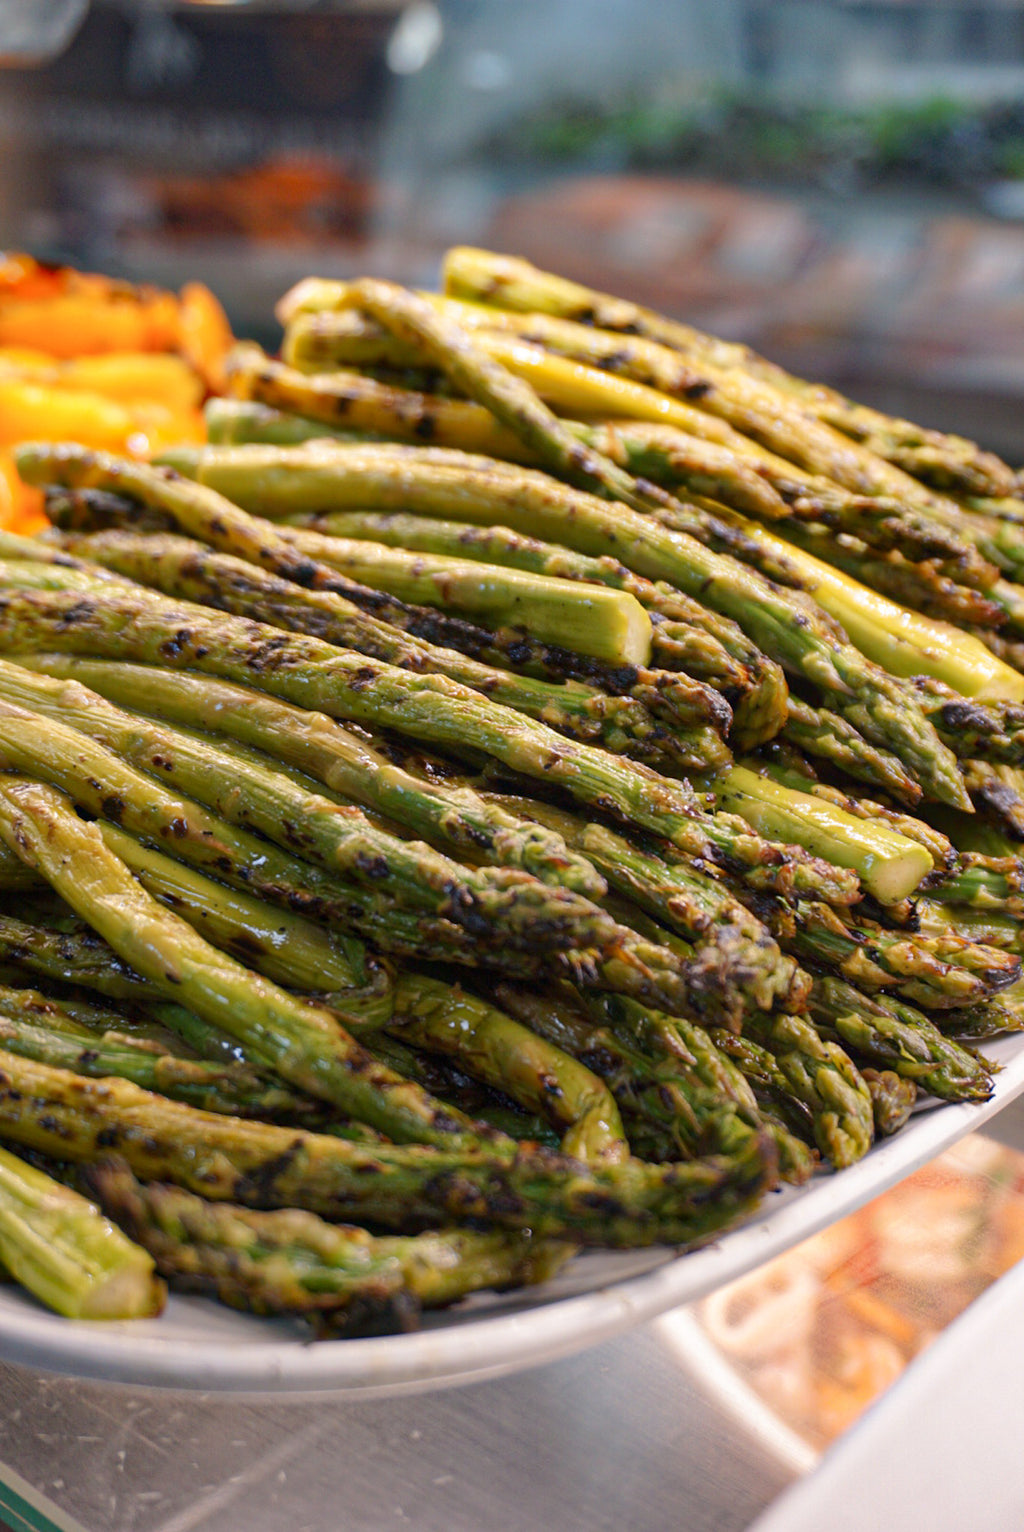 Grilled Asparagus - New Canaan